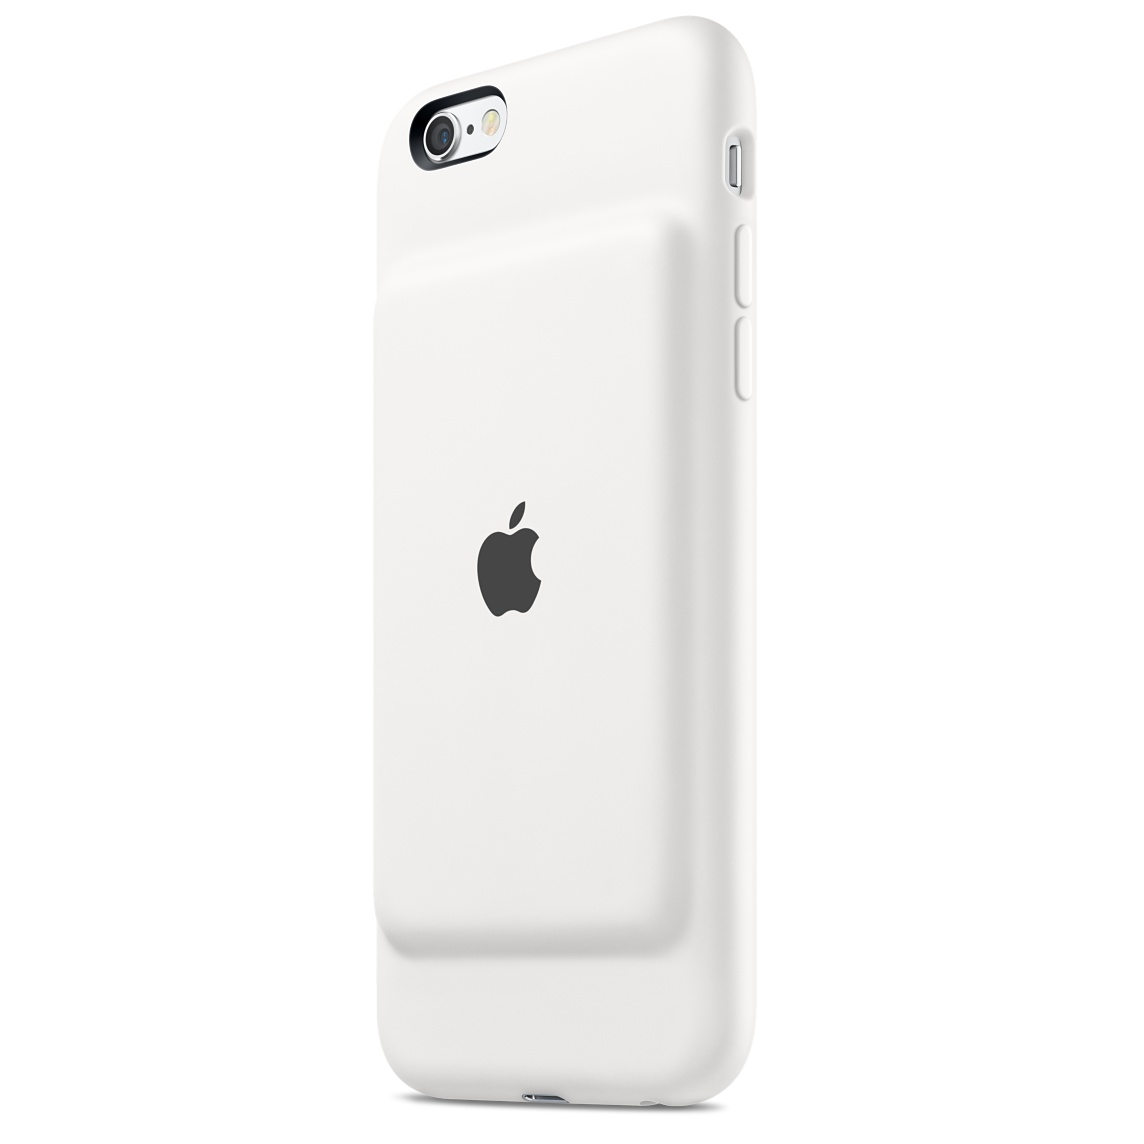 Apple iPhone 6S Smart battery case front and back view